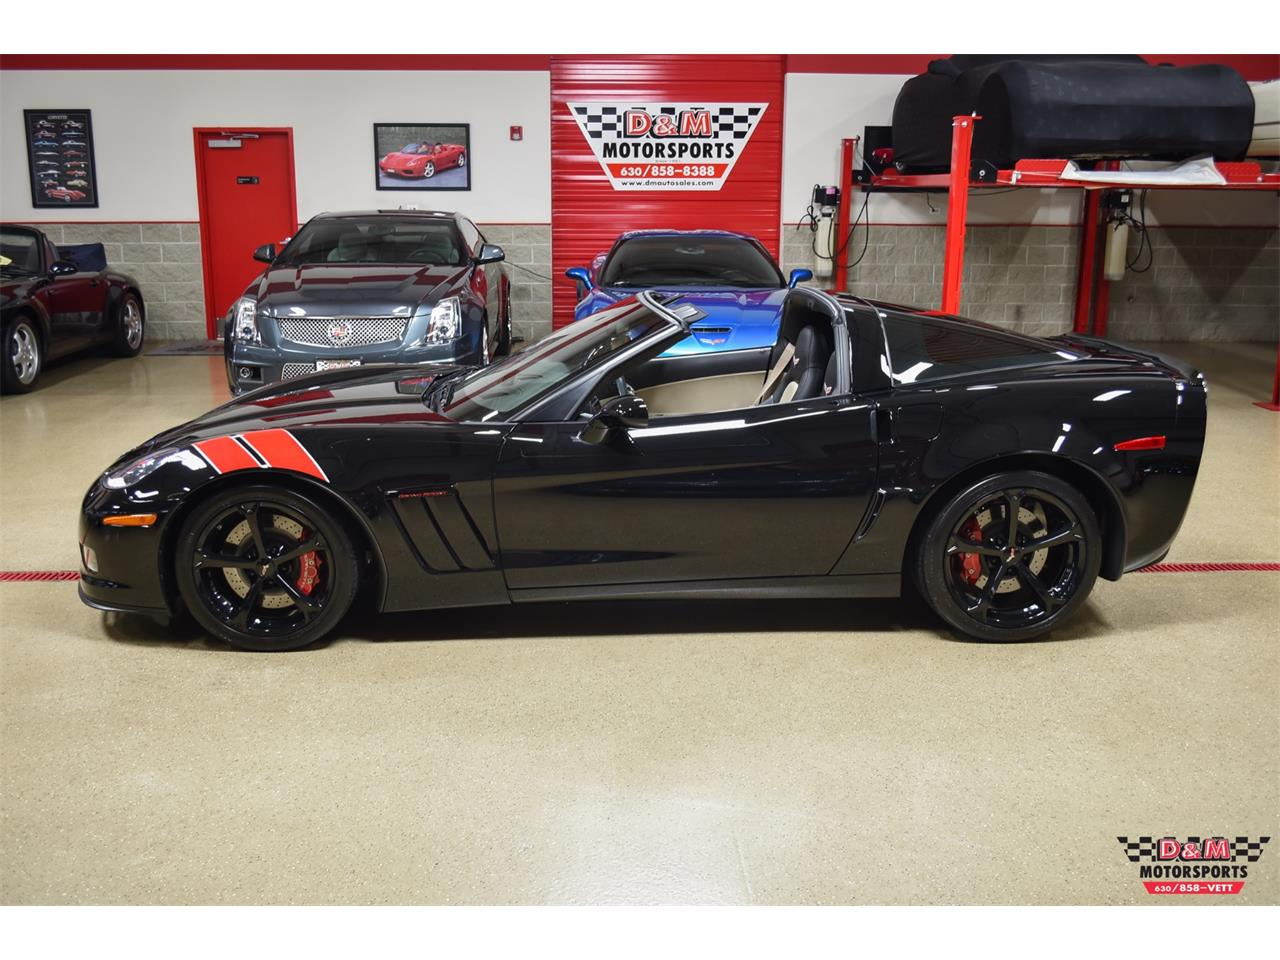 Large Picture of '10 Chevrolet Corvette located in Glen Ellyn Illinois - $37,995.00 Offered by D & M Motorsports - PUJ0